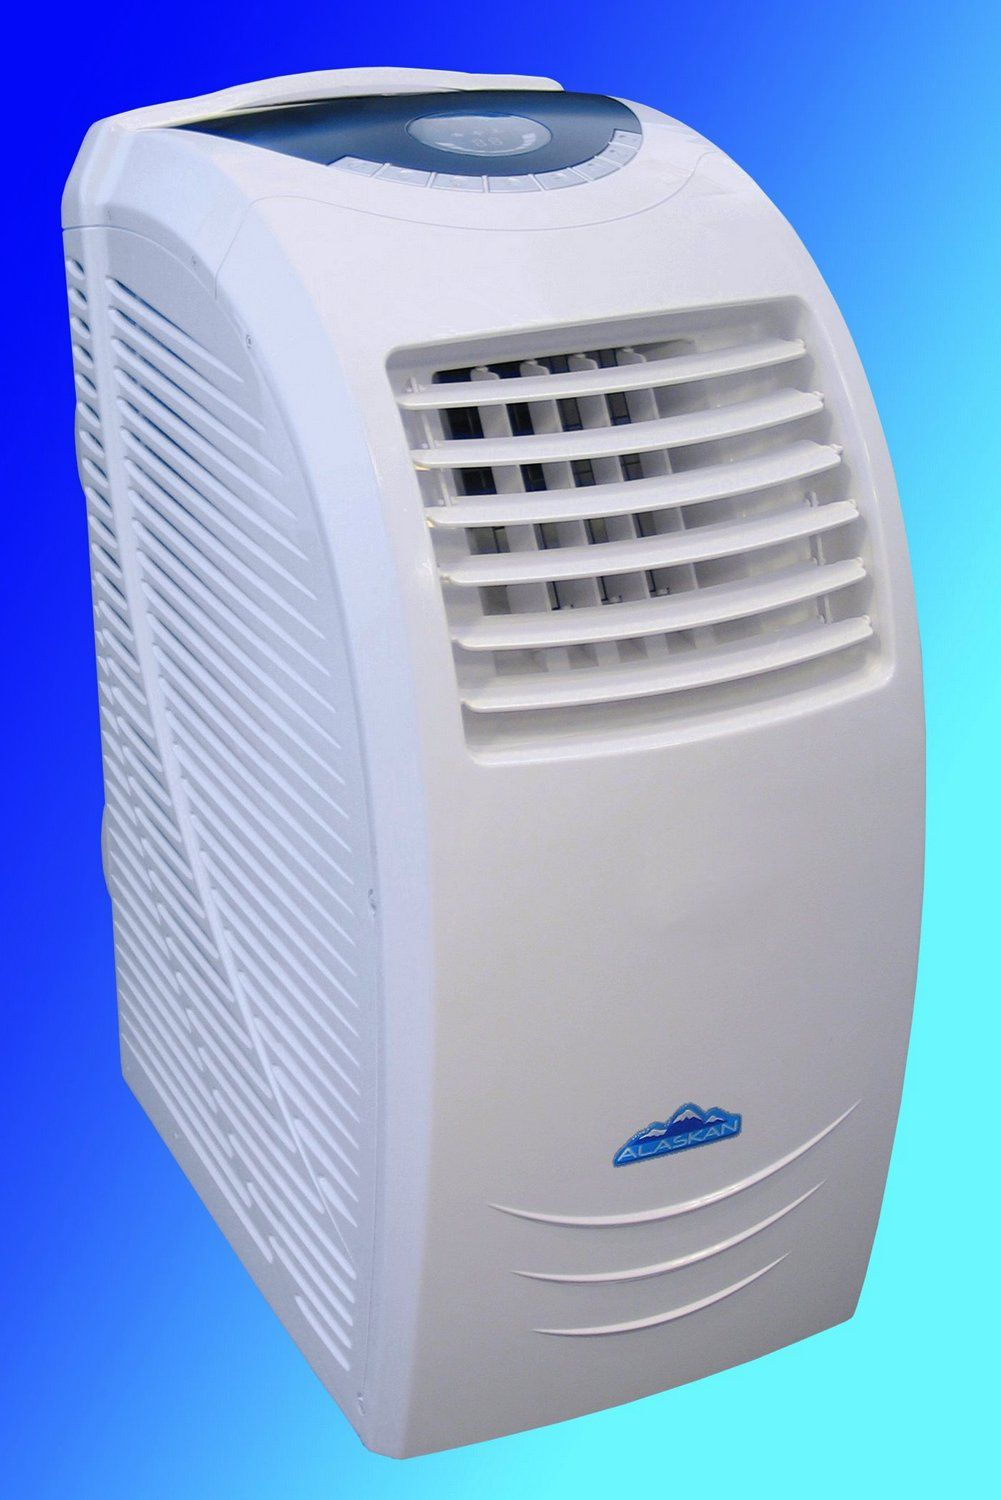 A Small Air Conditioner Unit Care About You Smallest Air Conditioner Air Conditioner Units Small Air Conditioning